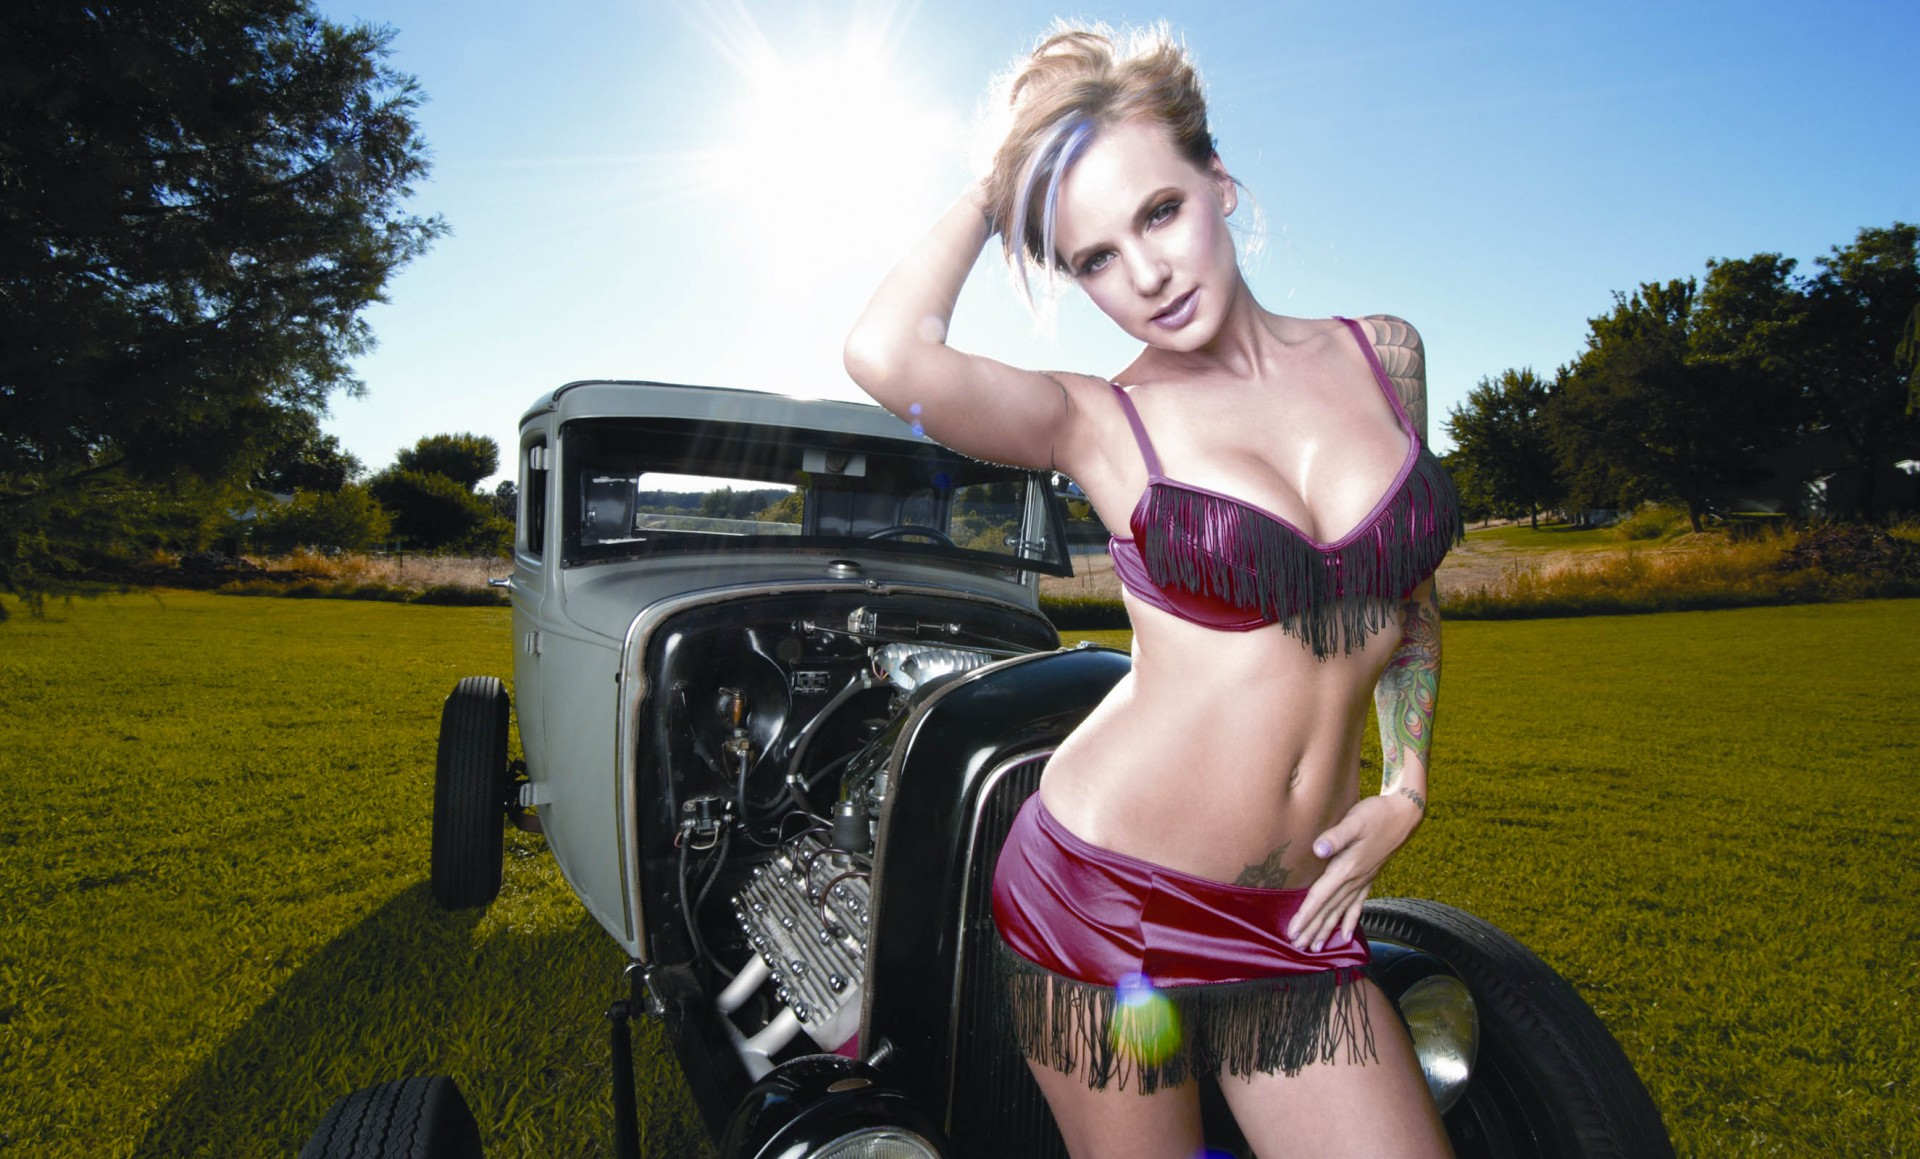 nikki hot rod pinup